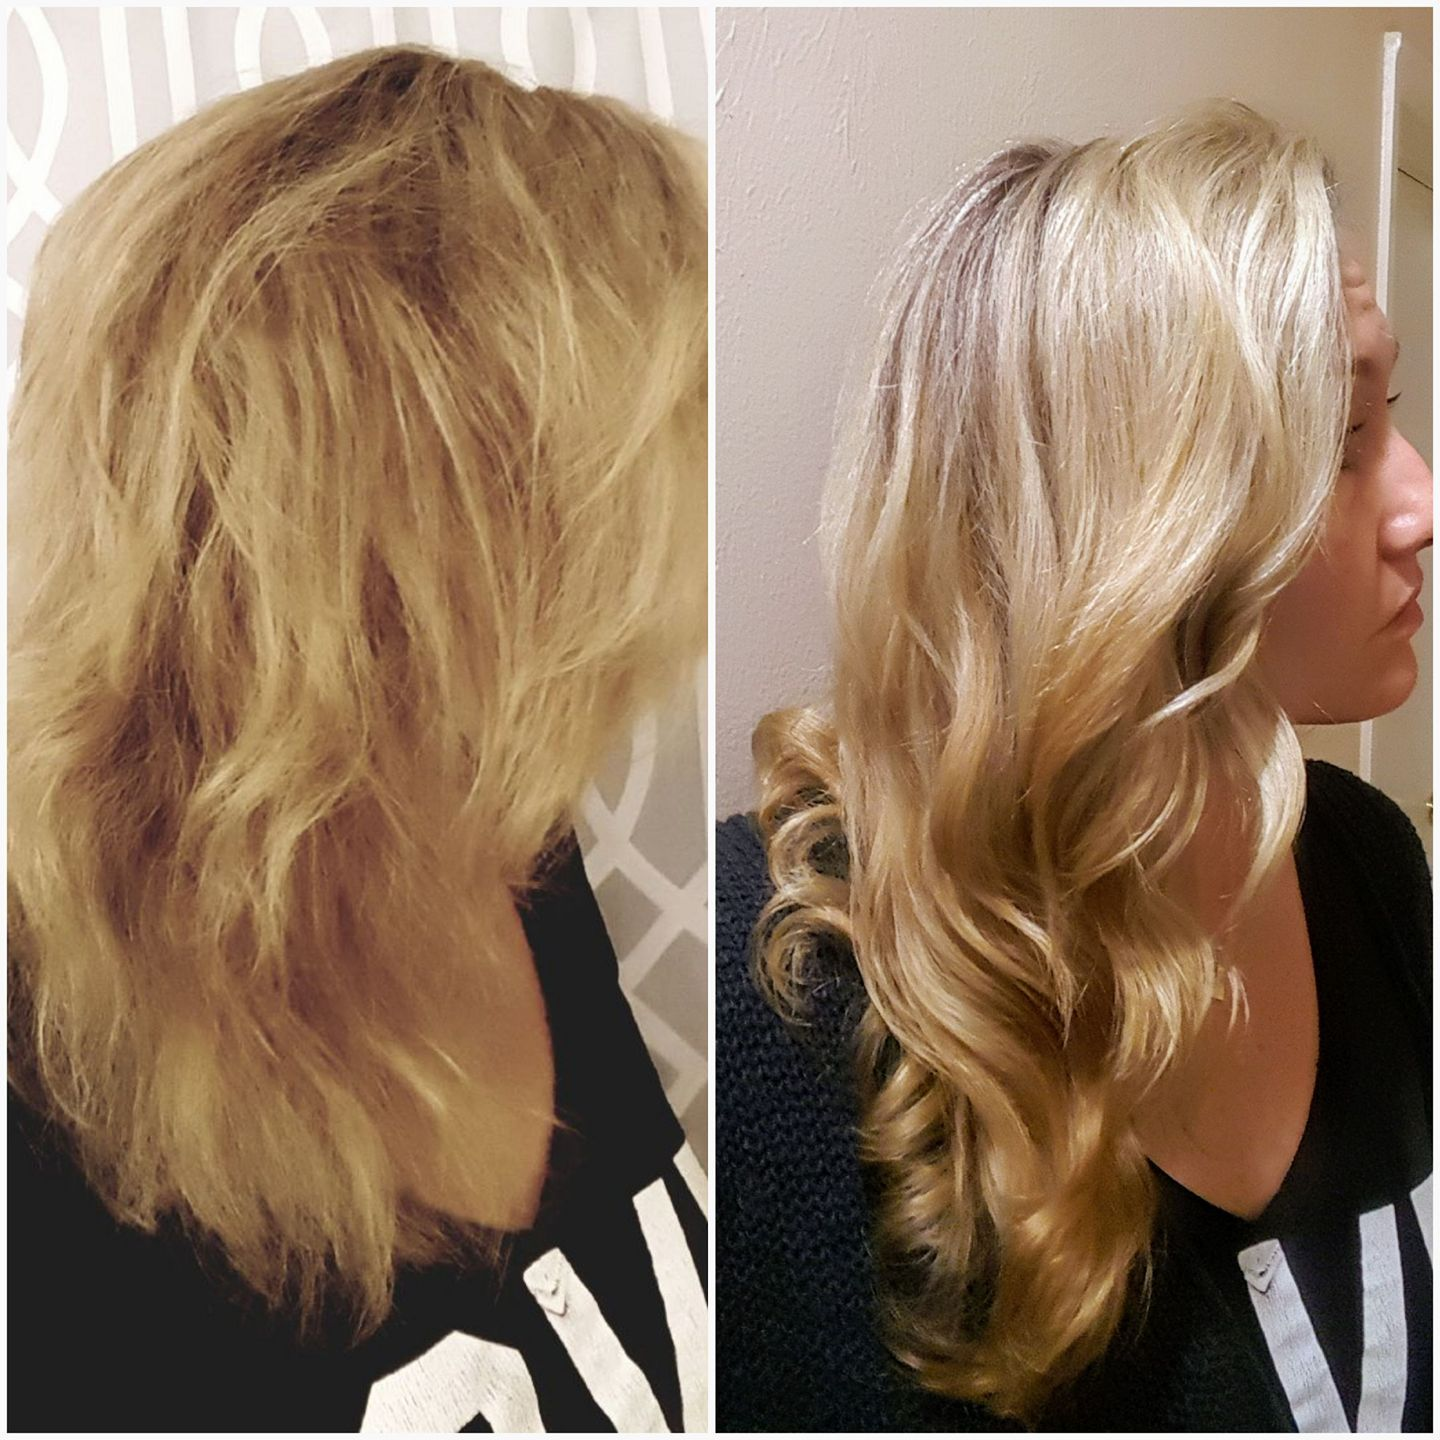 From Testimonial ) results using Monat Hair